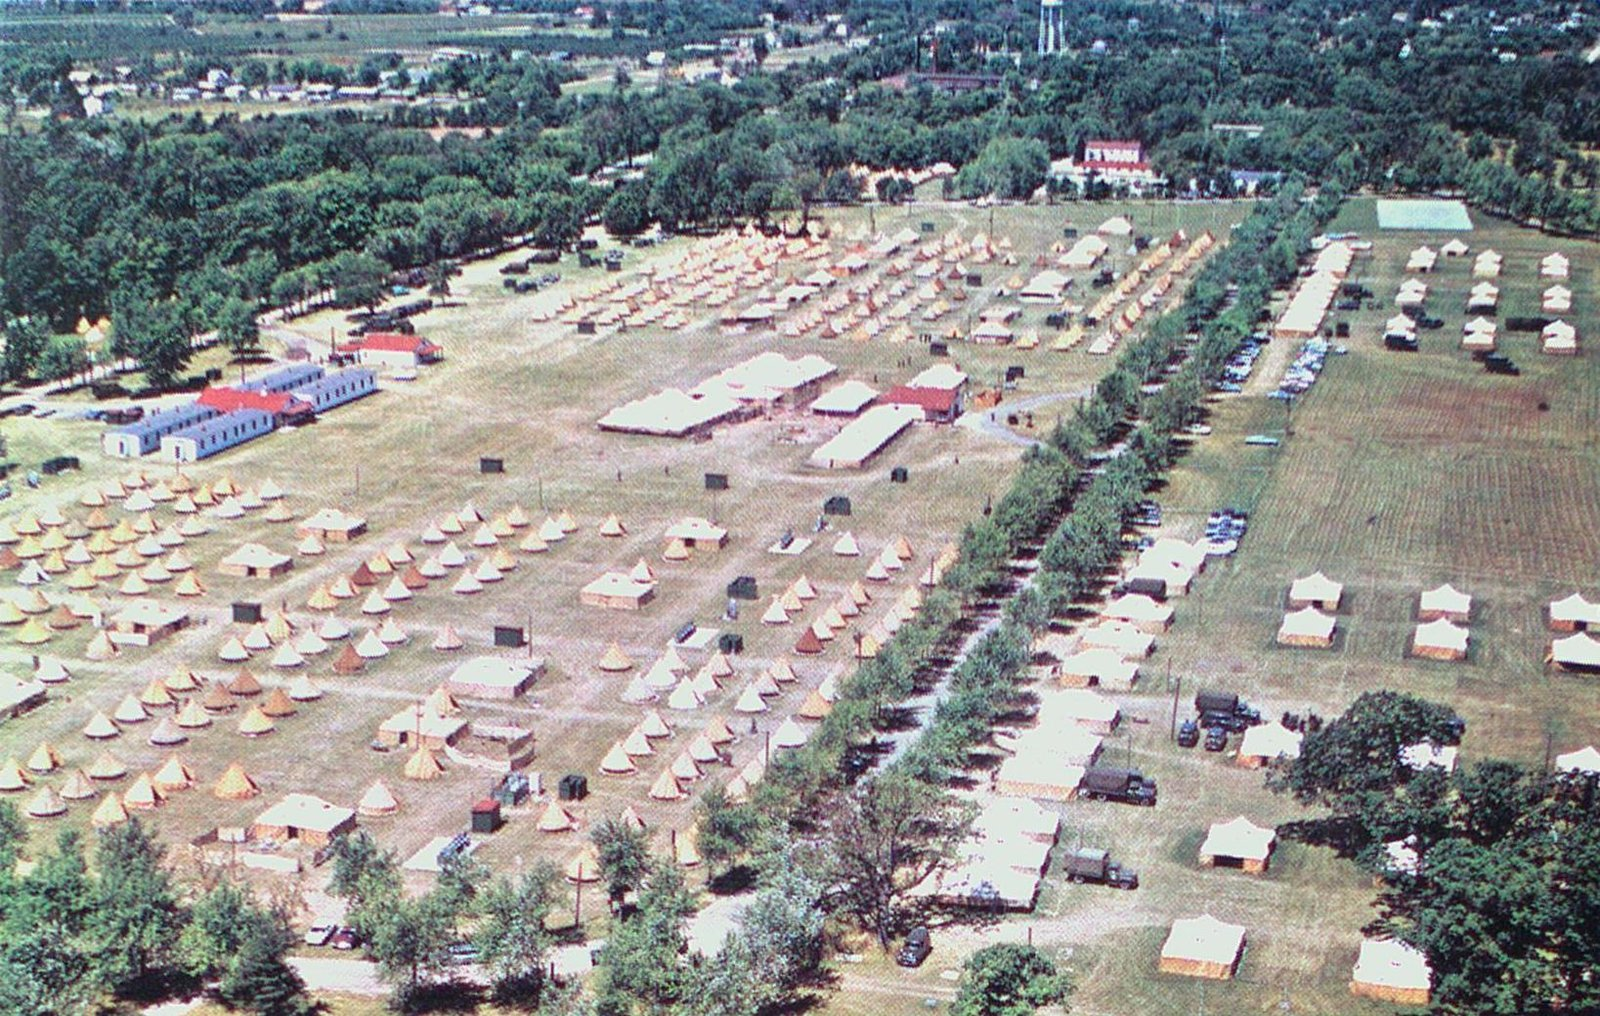 The Canadian Army Training Camp, Niagara-on-the-Lake